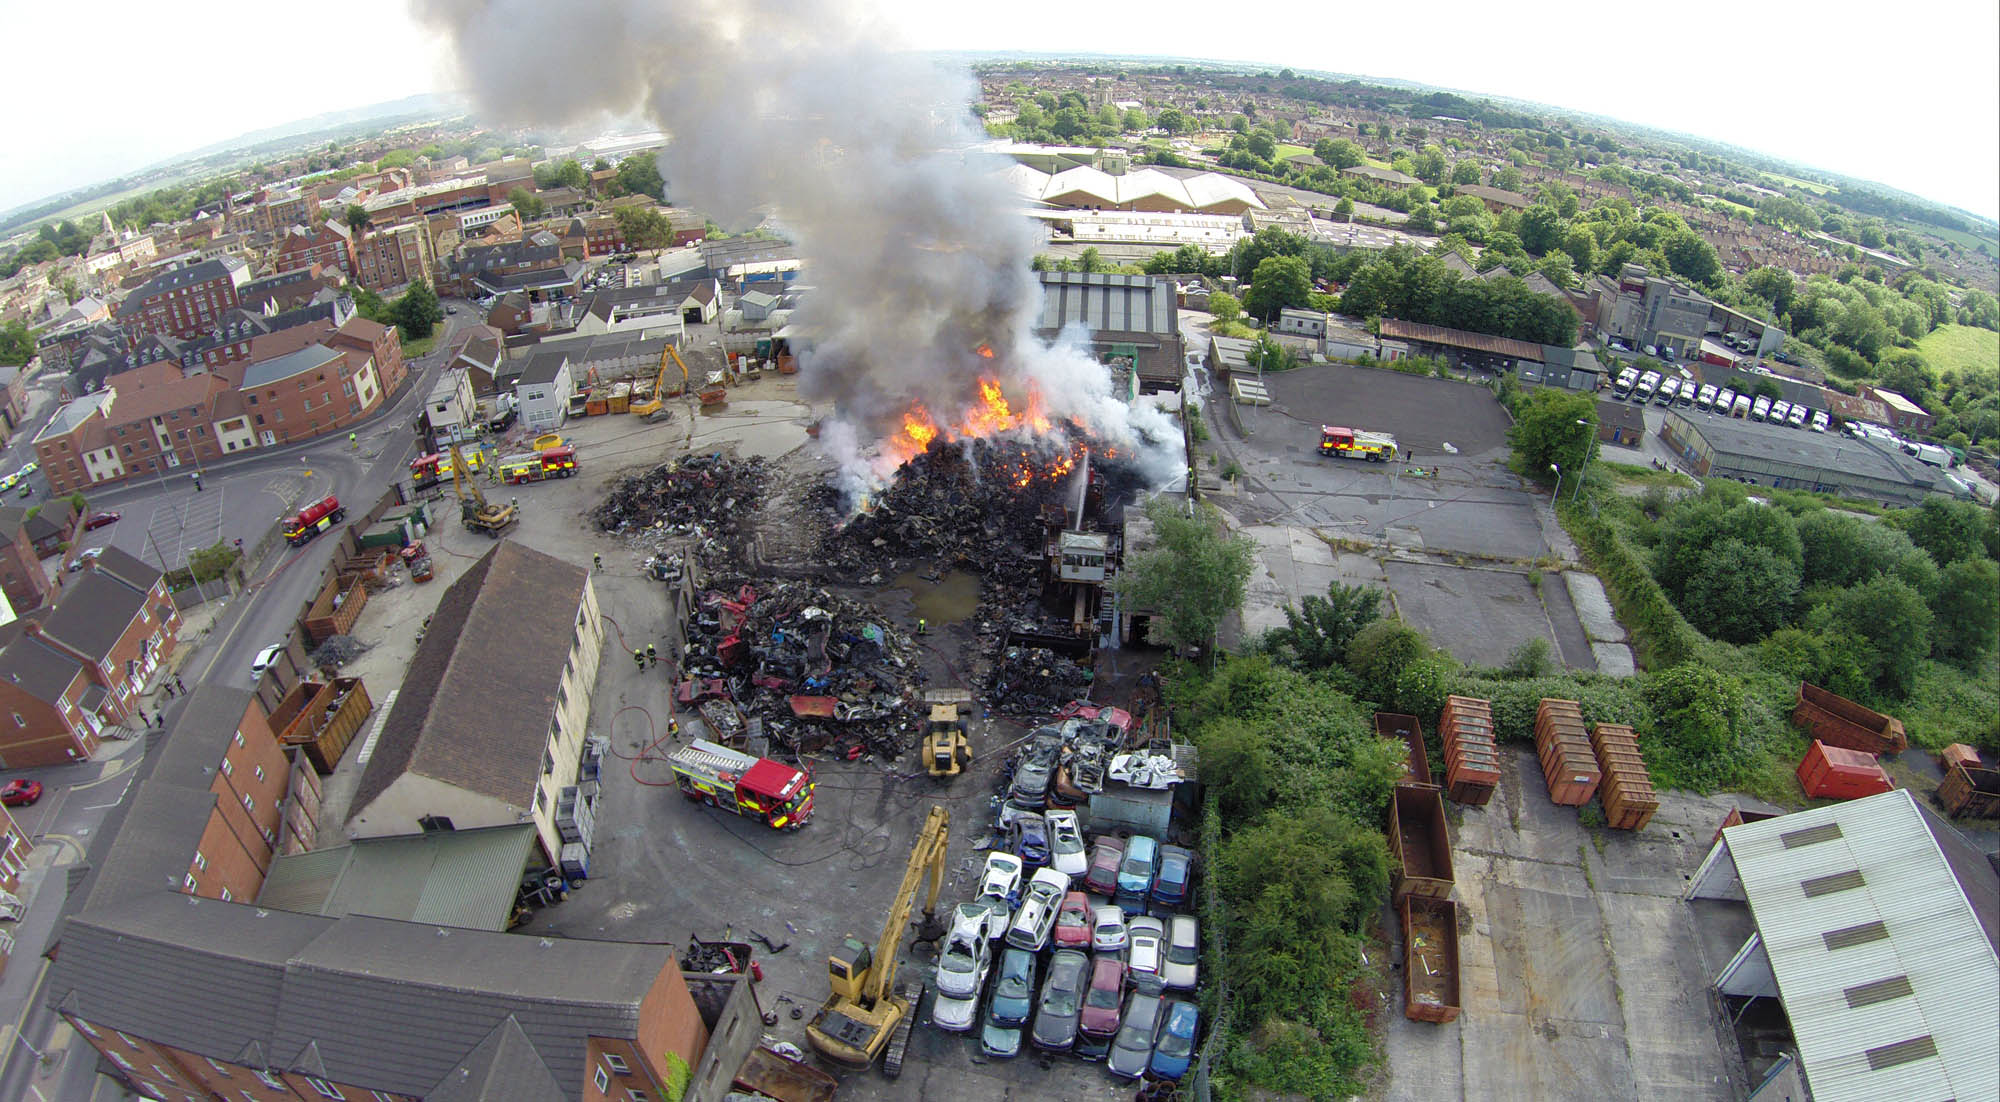 A picture of EJ Shanley's site taken by Graham Risdon, of www.mediainventions.com, using a quadcopter on Saturday